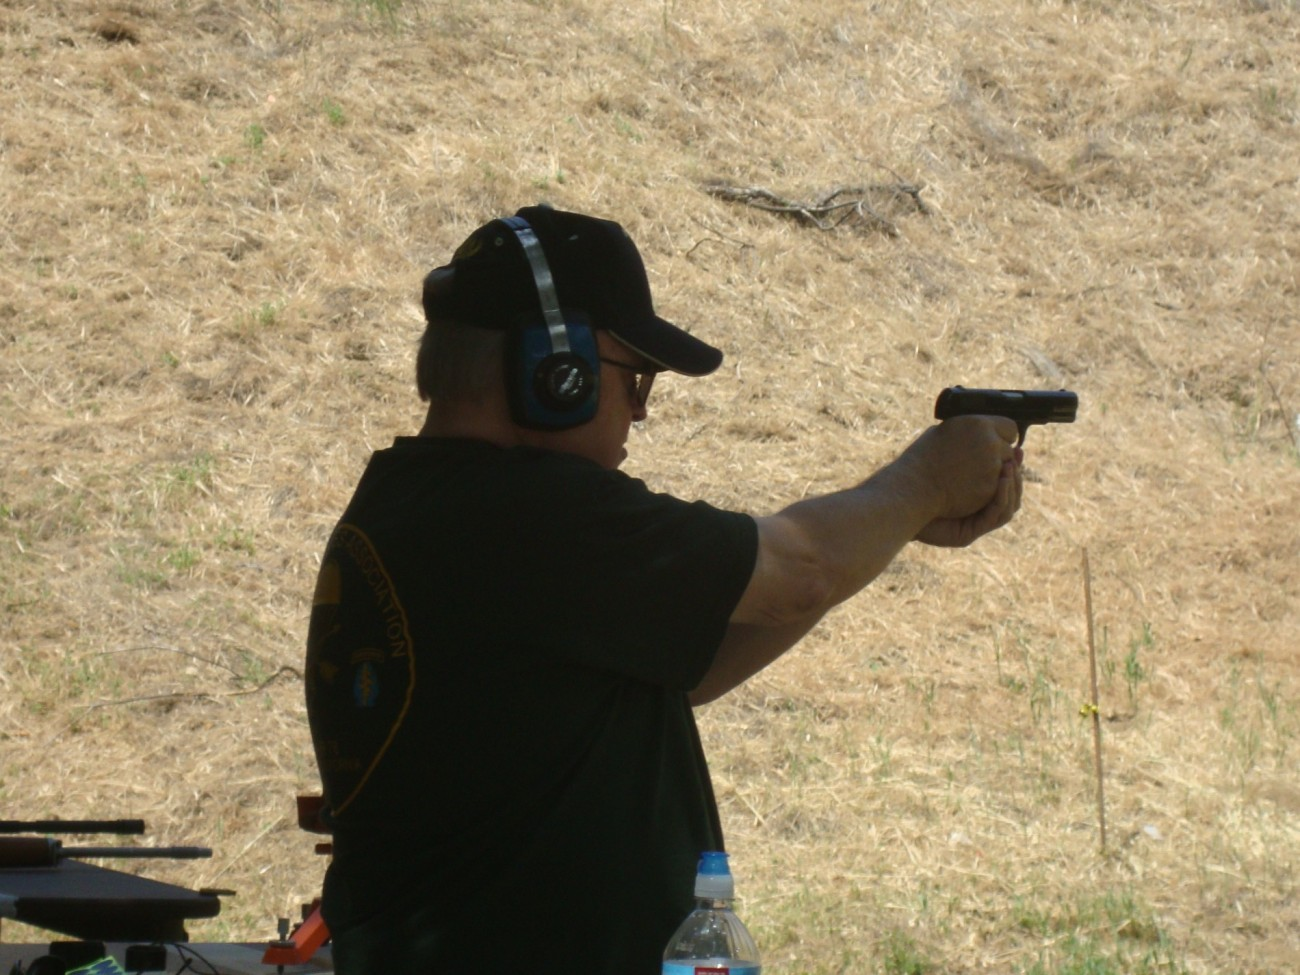 Ed Barrett shooting the Colt Model 1903 Generals pistol